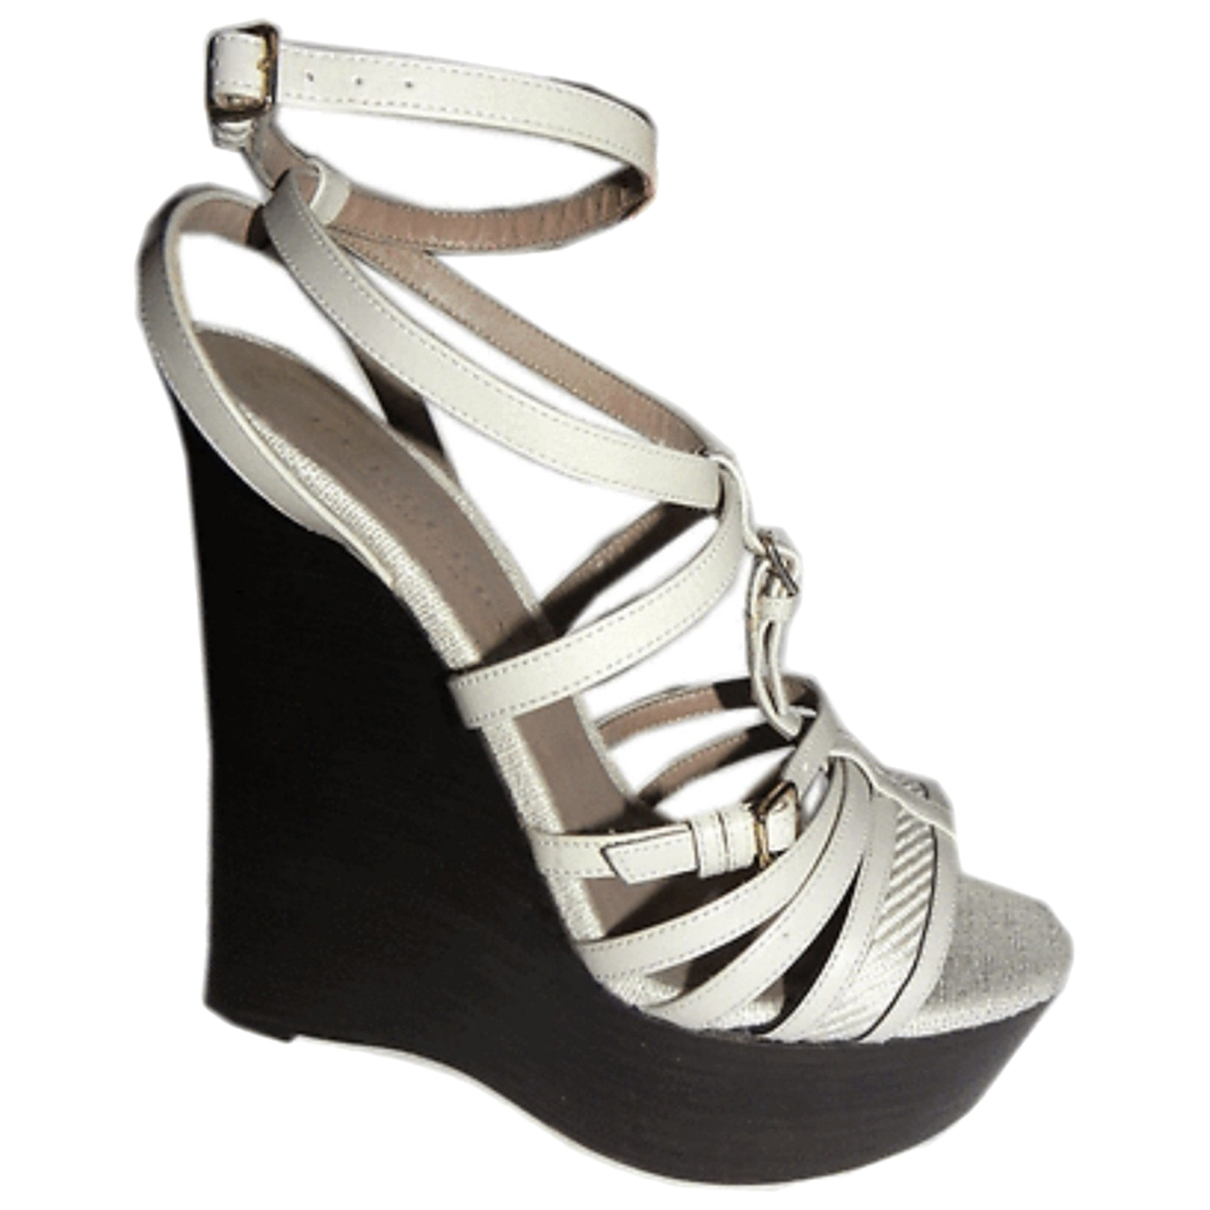 Burberry \N Beige Leather Sandals for Women 36 EU